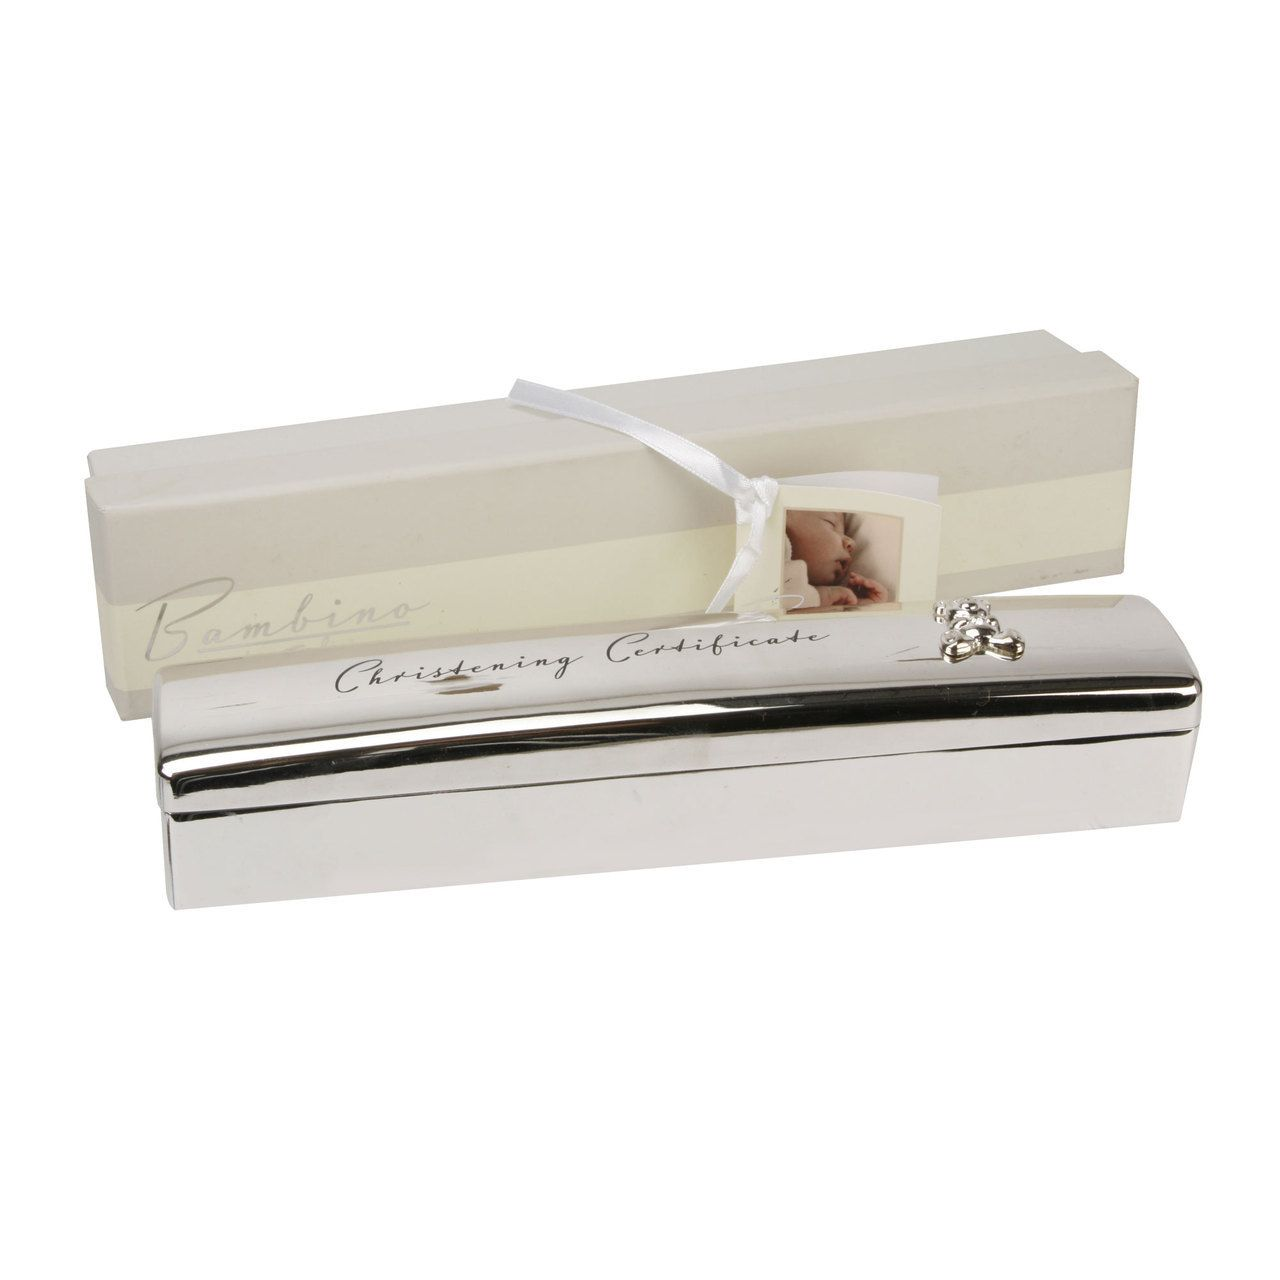 Silver Plated Baby Gifts Australia : Silver plated christening certificate box by bambino baby gift